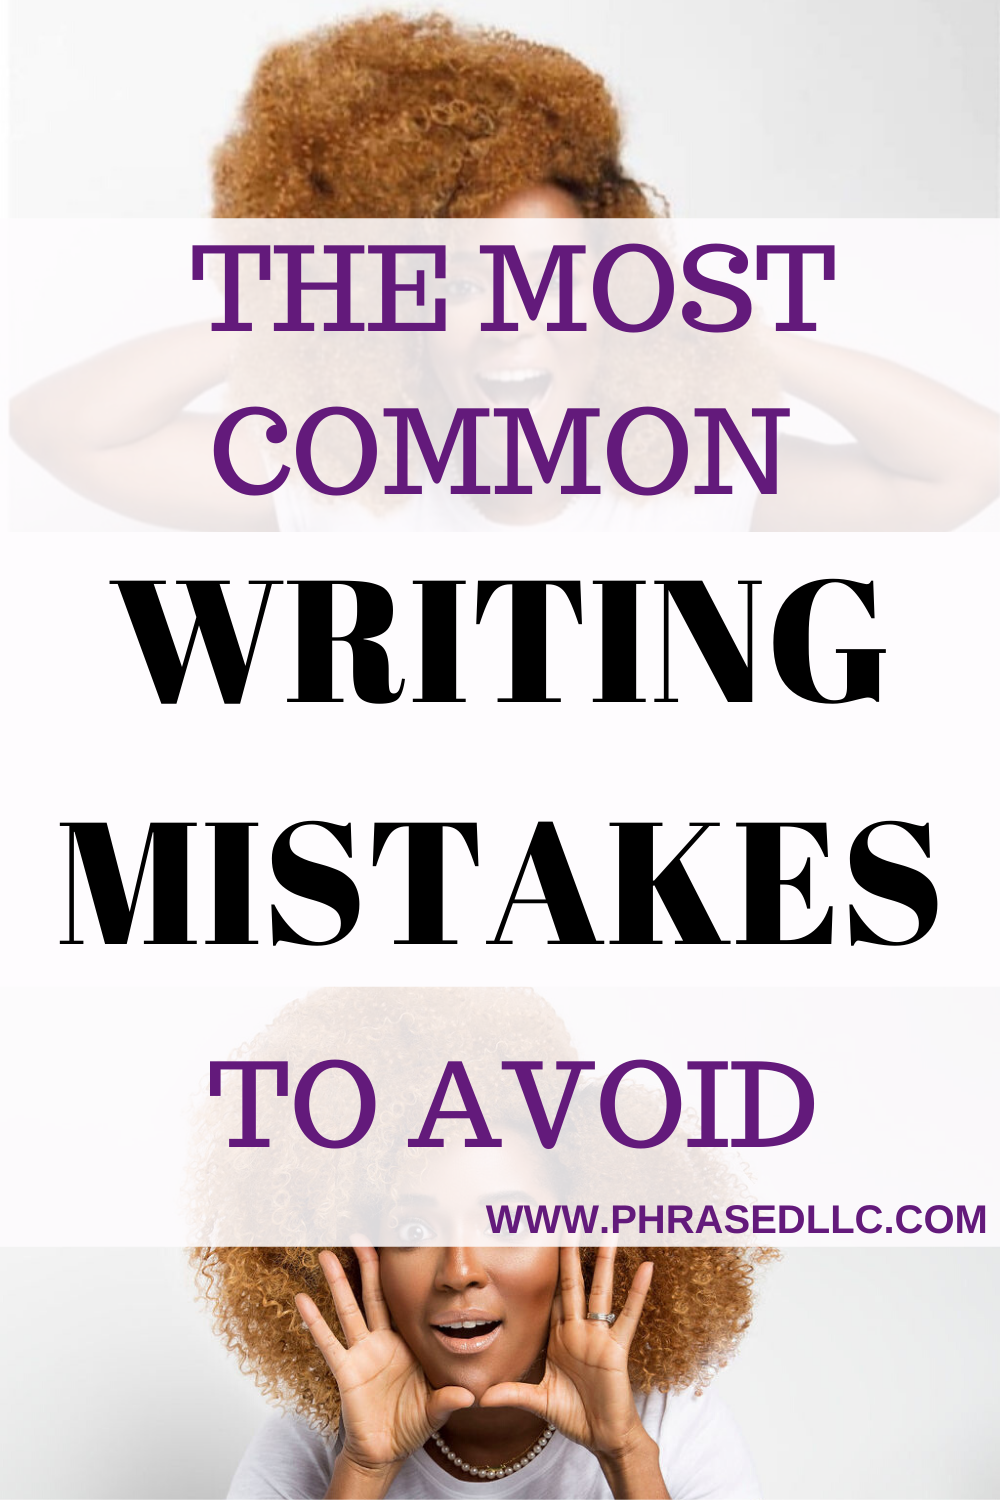 Avoid these common website and blog writing mistakes to present a trustworthy product or service to your audience. Edit your content often to avoid these common writing mistakes.